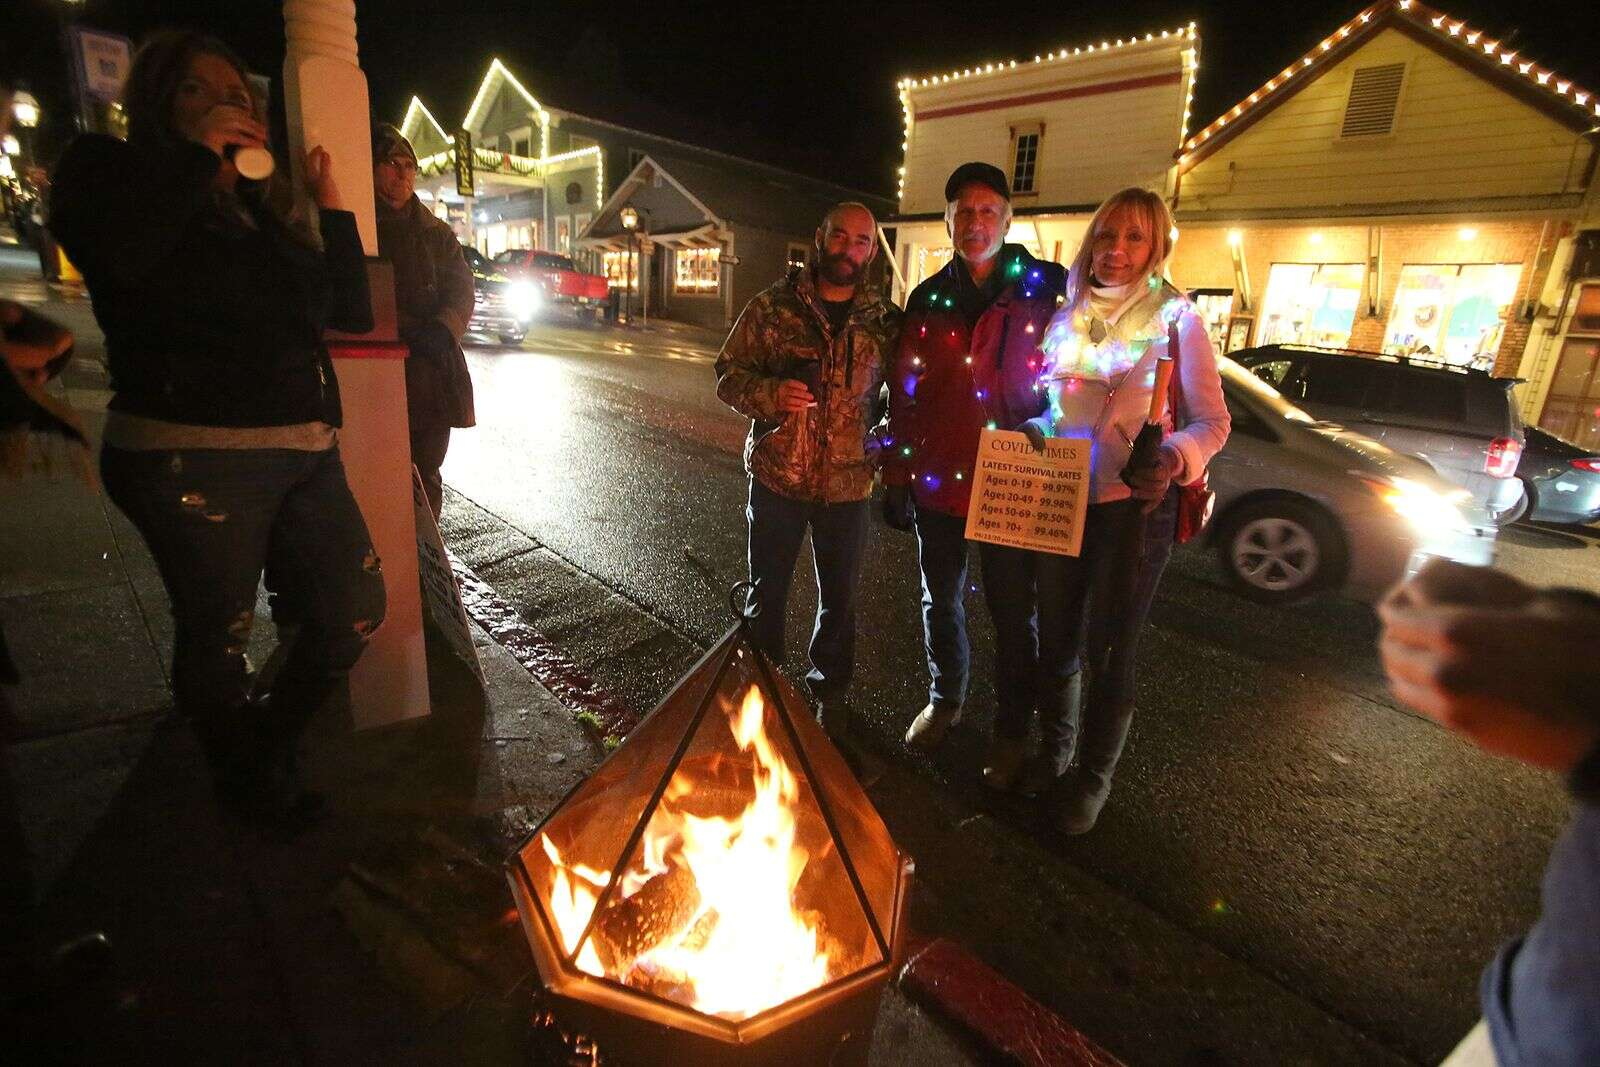 A warming fire placed on the sidewalk was later moved to the street after a contact from a Nevada County Fire official.